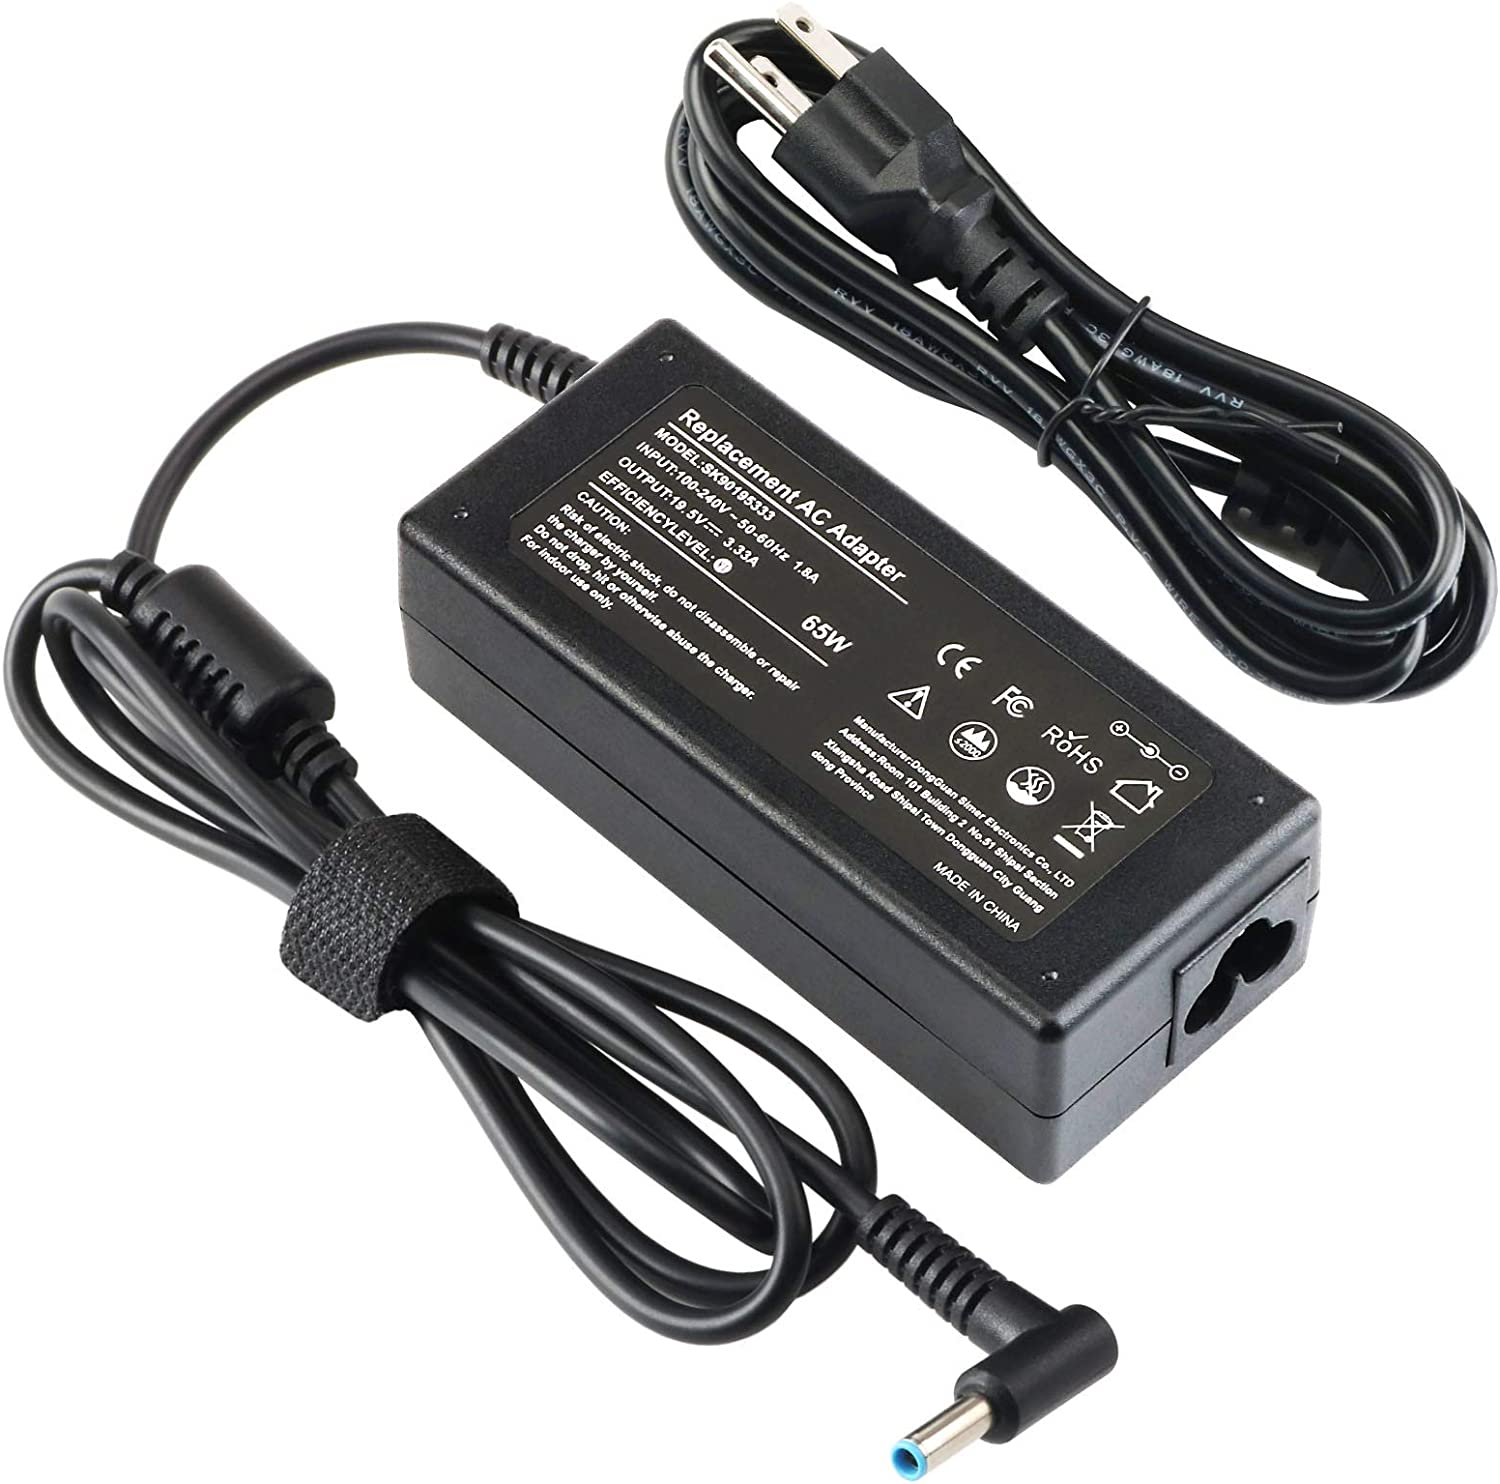 65W 45W AC Adapter Charger for HP Envy X360 13 17 Series 13-d010nr 13-ad173cl 13-ad173cl 13-ad010nr 13-ad065nr 13-ad010nr 13-ah0010nr 17-s143cl 17-j160nr 17-j130us Power Supply Cord